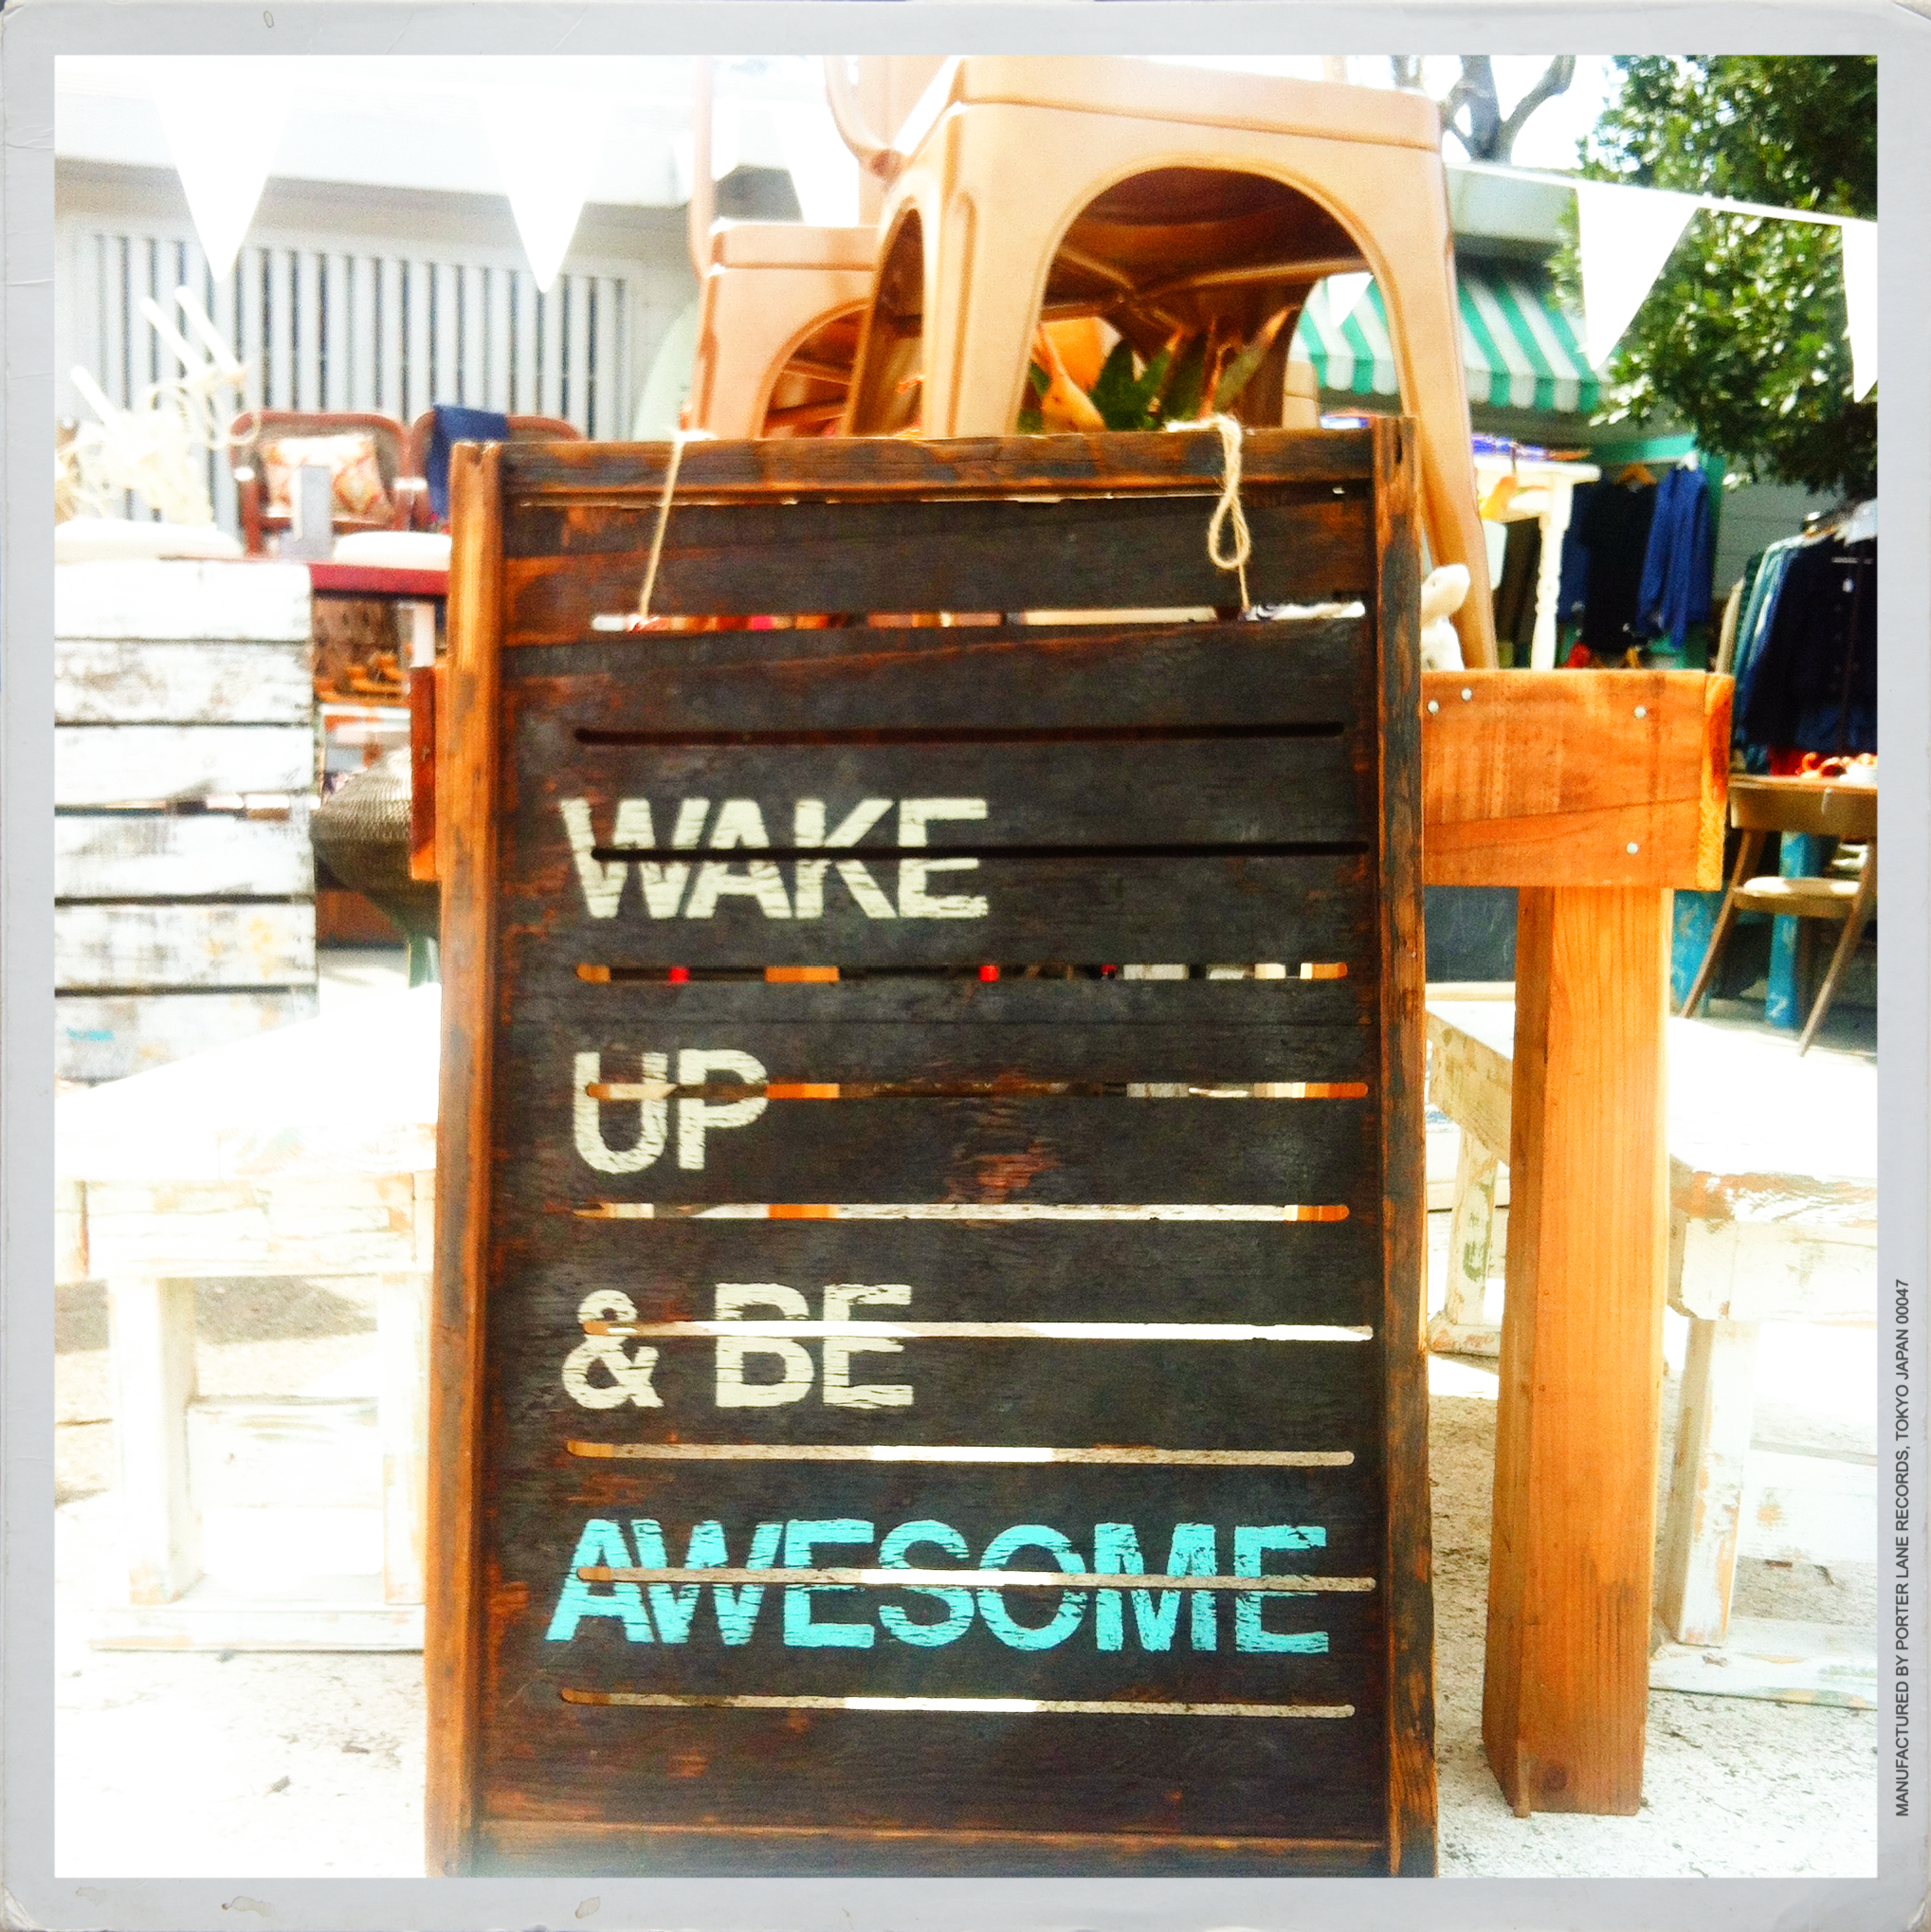 Wake up and be awesome at saturdaysoul.com